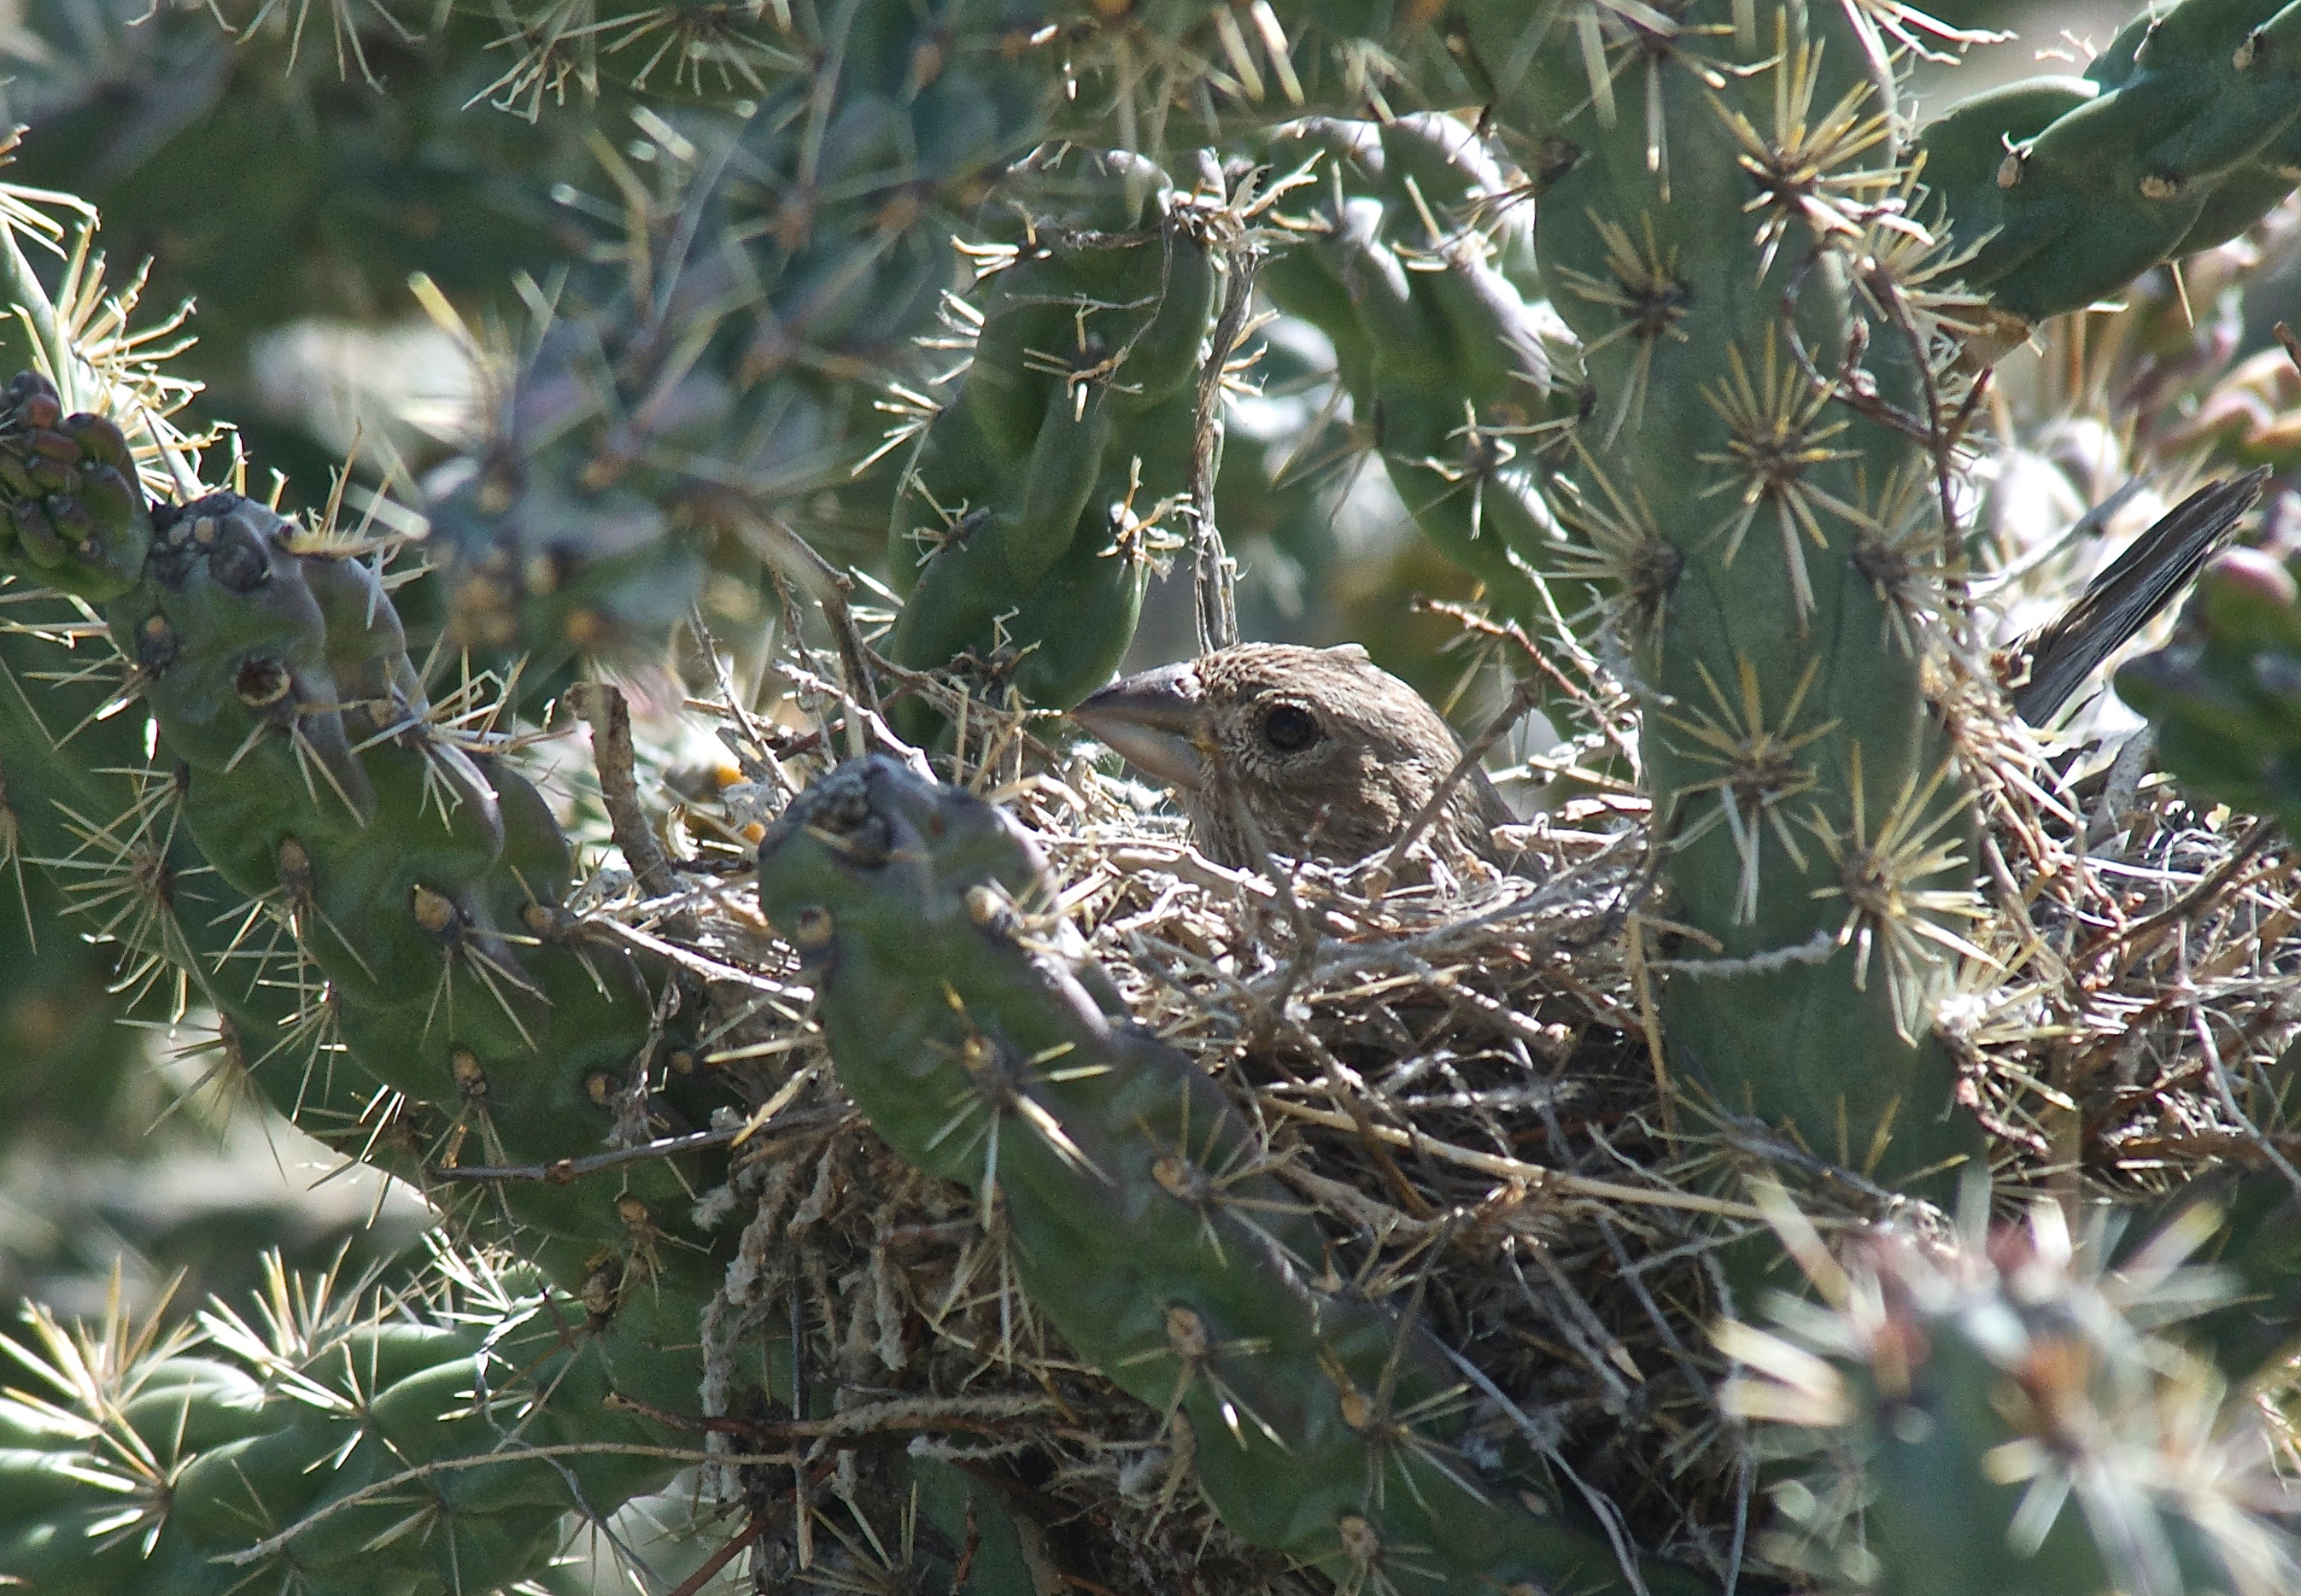 House Finch on Nest